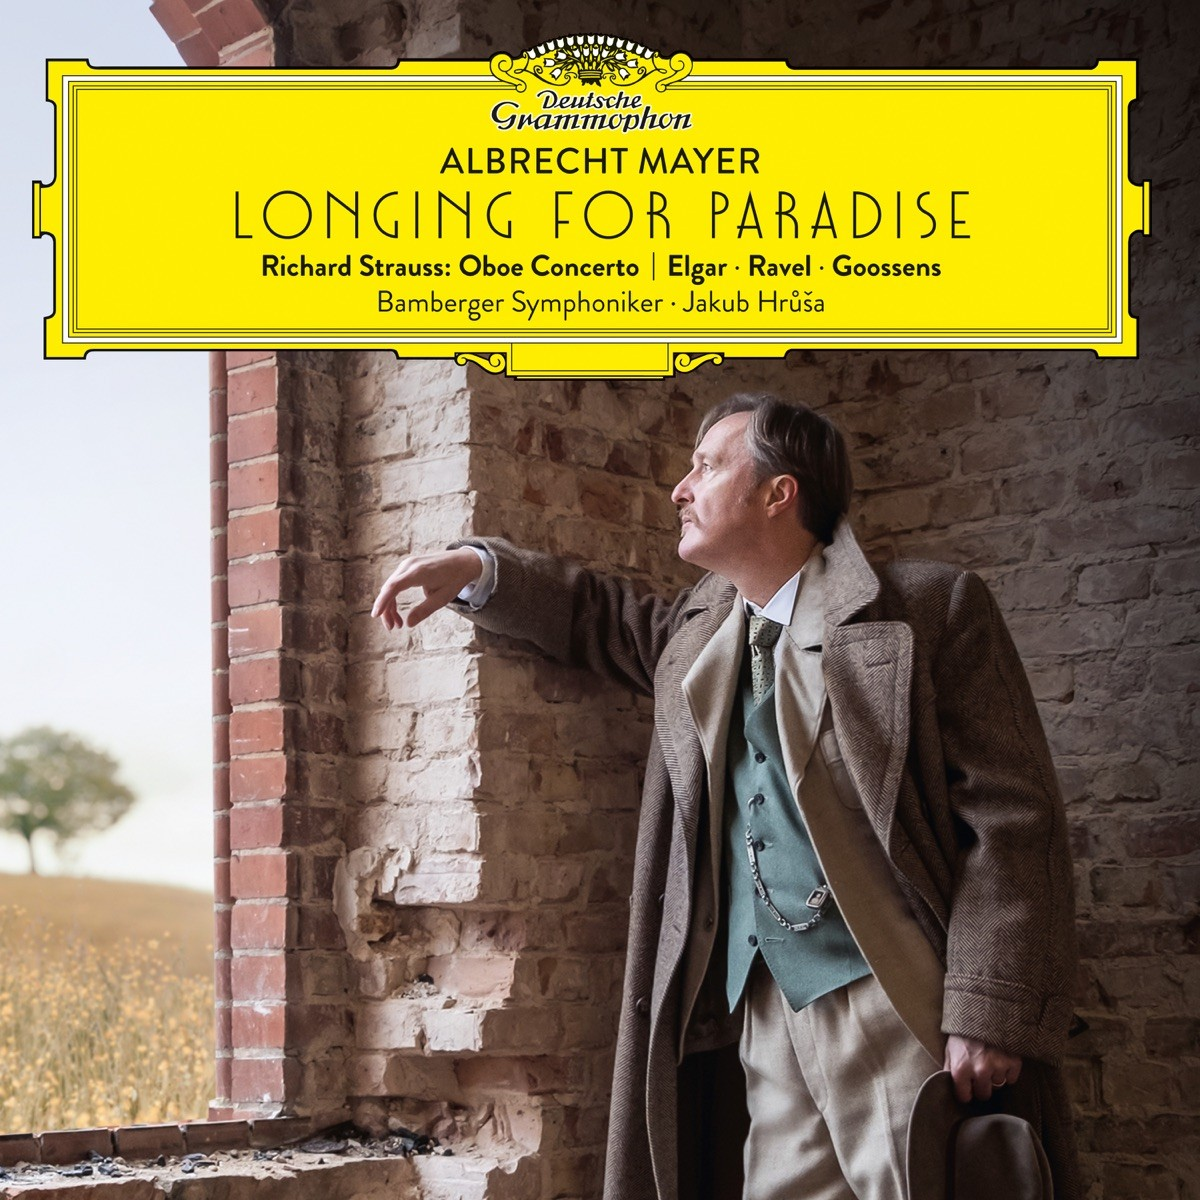 Albrecht Mayer - Longing for Paradise CD - 002894836622